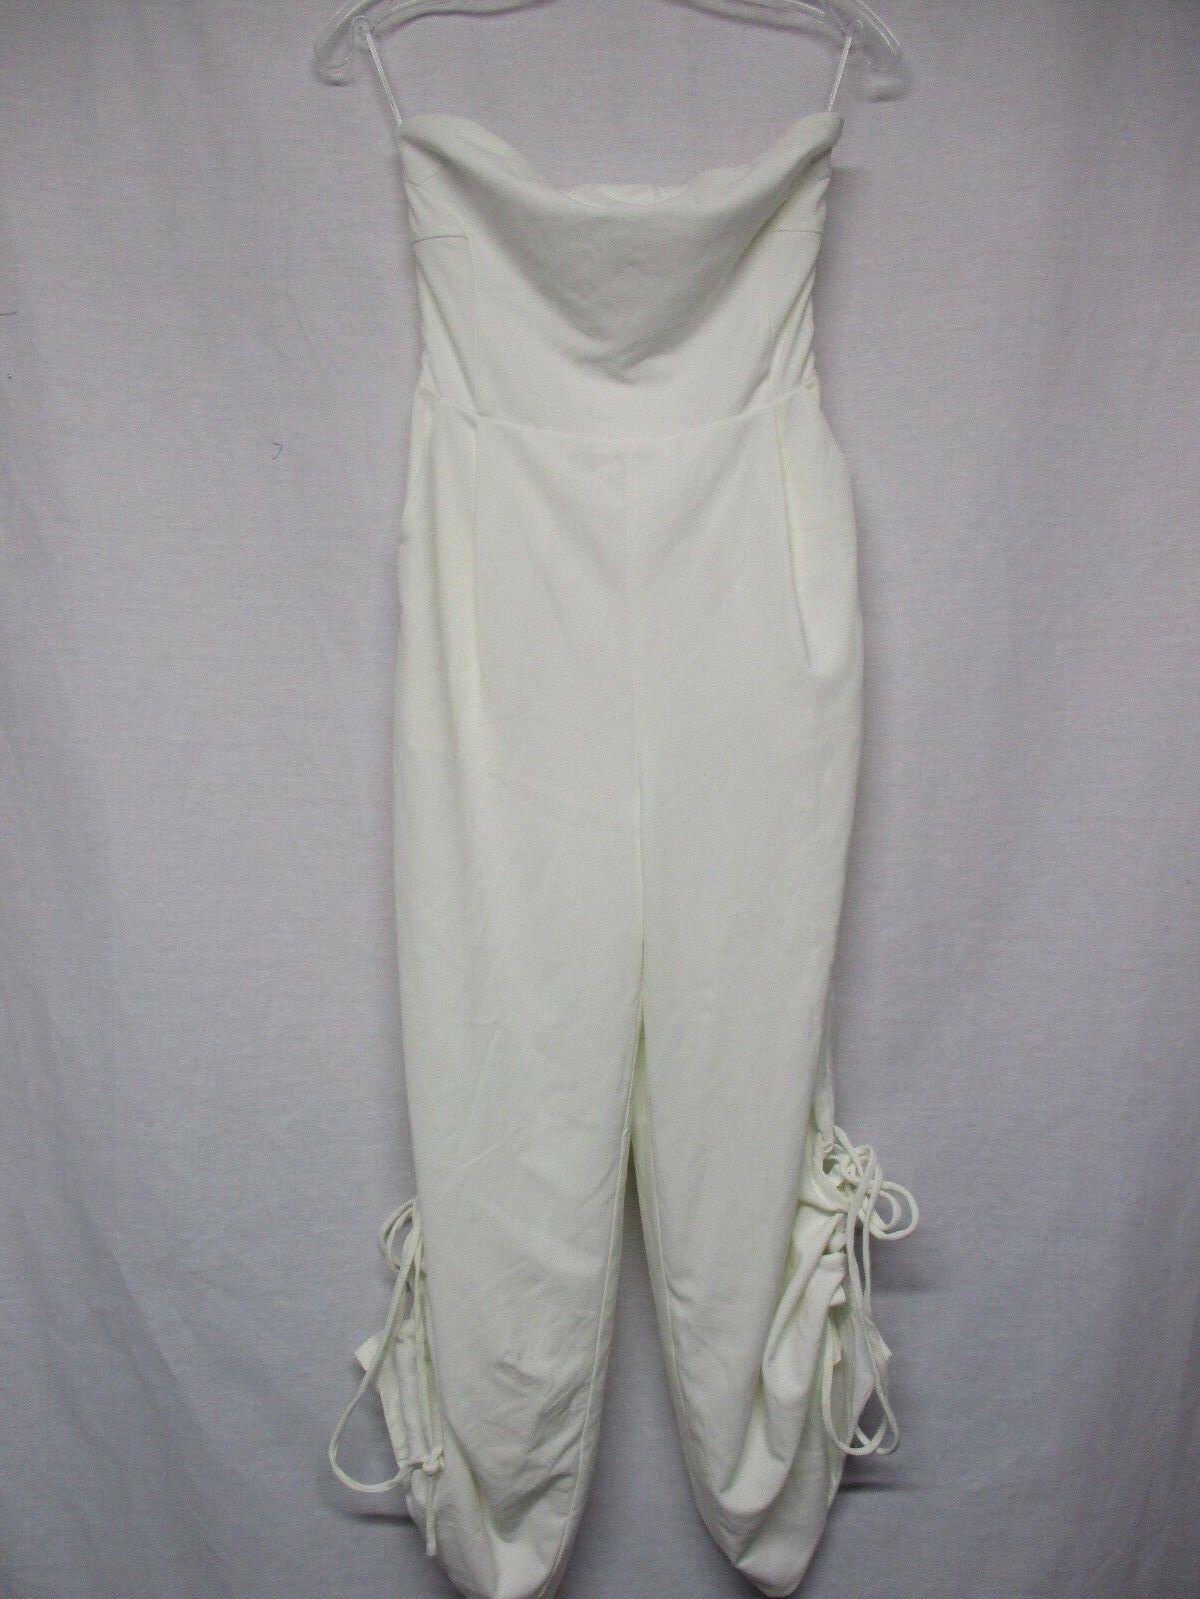 LUCCA  Women's Strapless Jumper Romper Cropped Pants Size XS       S6